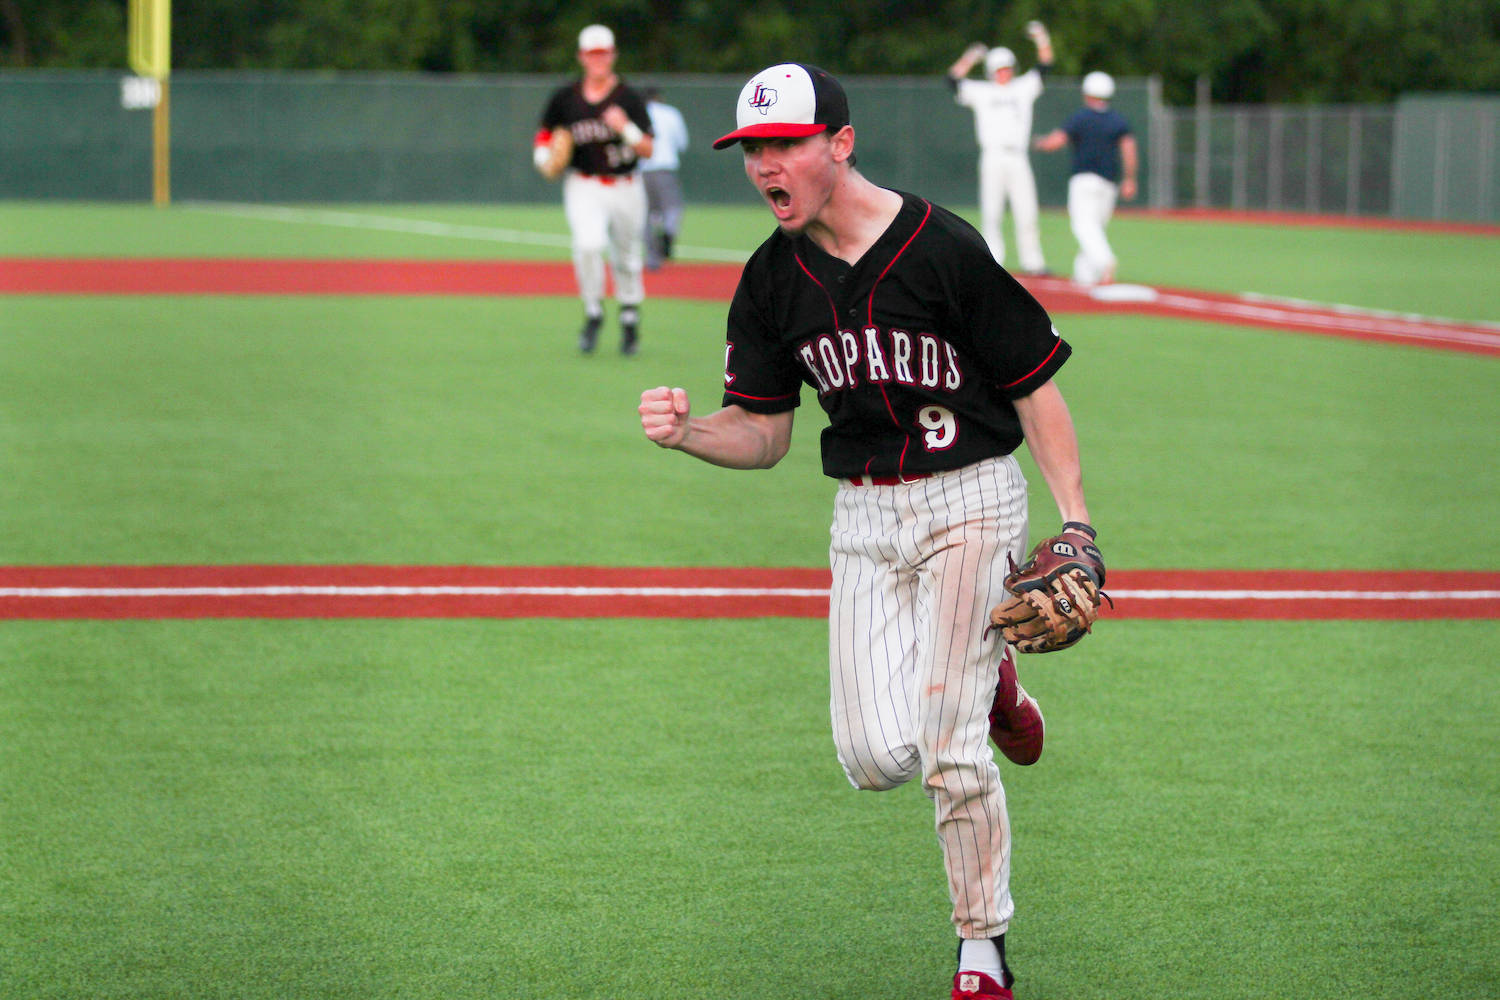 Senior+Jake+Terwilliger+celebrates+as+the+Leopards+tie+the+game+7-7+in+the+seventh+inning.+